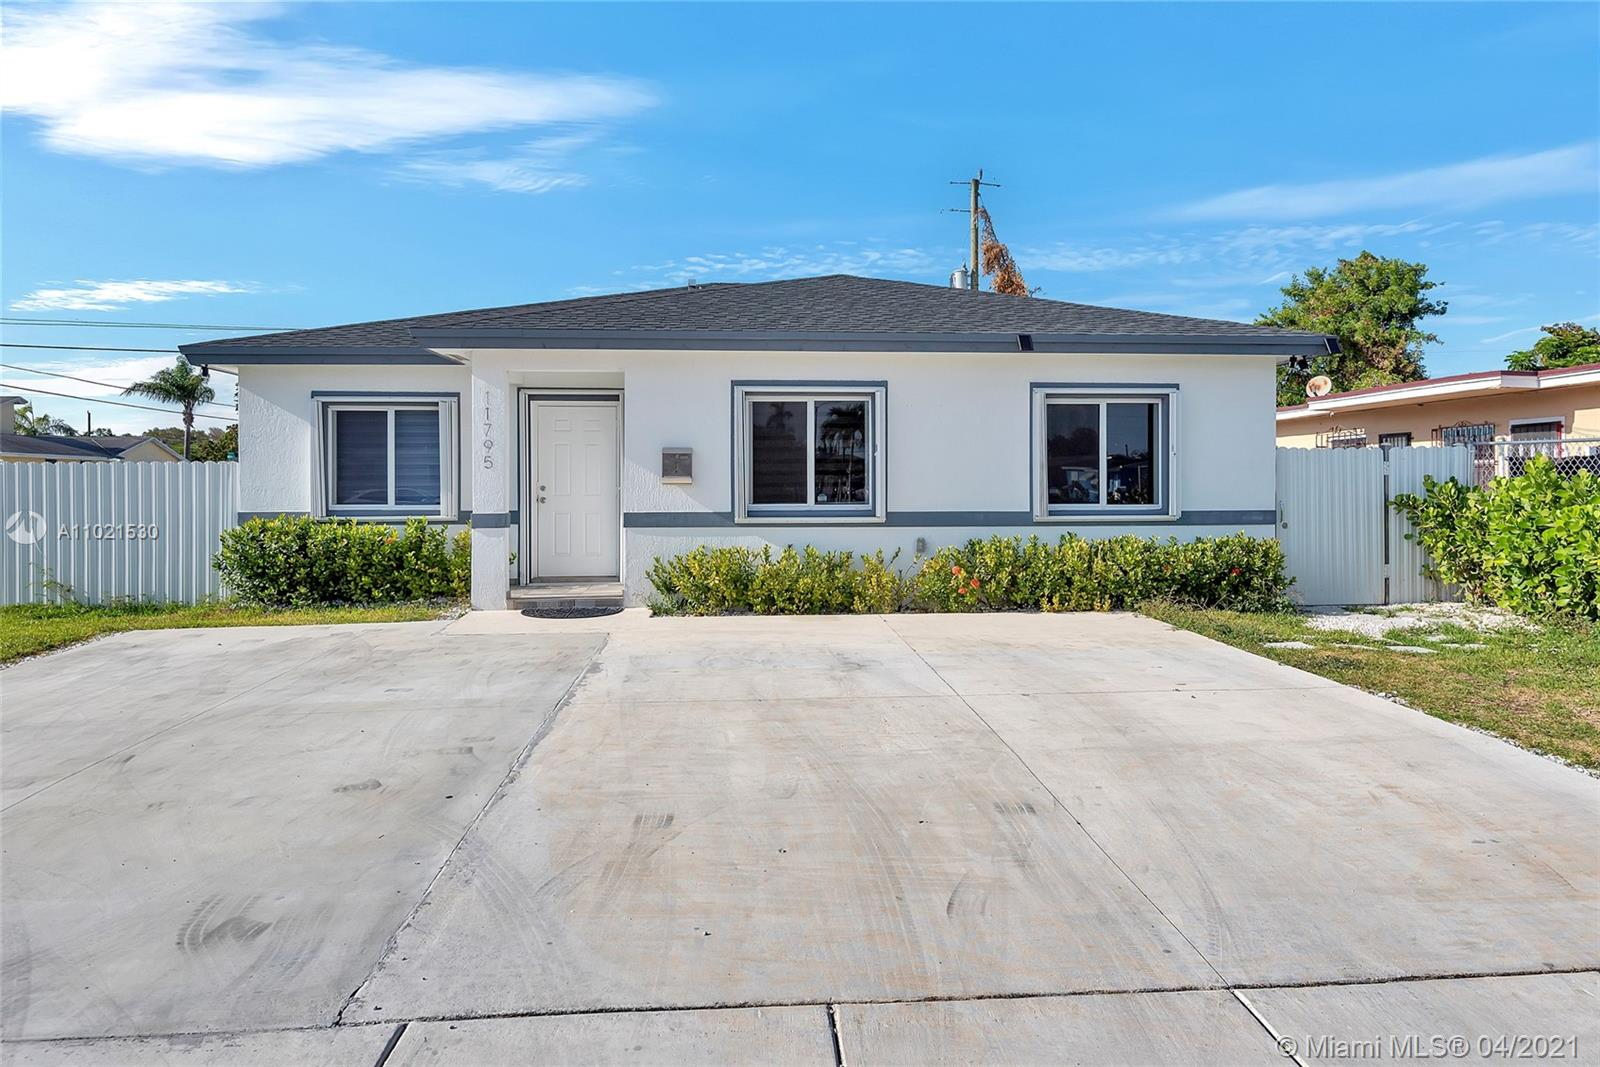 New Construction Single Family Home built in 2019. Large corner lot, fenced in yard. Room for Boat/Pool/RV and outdoor kitchen. Fully tiled with granite kitchen and stainless steel appliances. Property is a 4 bedroom 2 bath home. Easy to show. ****READ BROKER REMARKS****